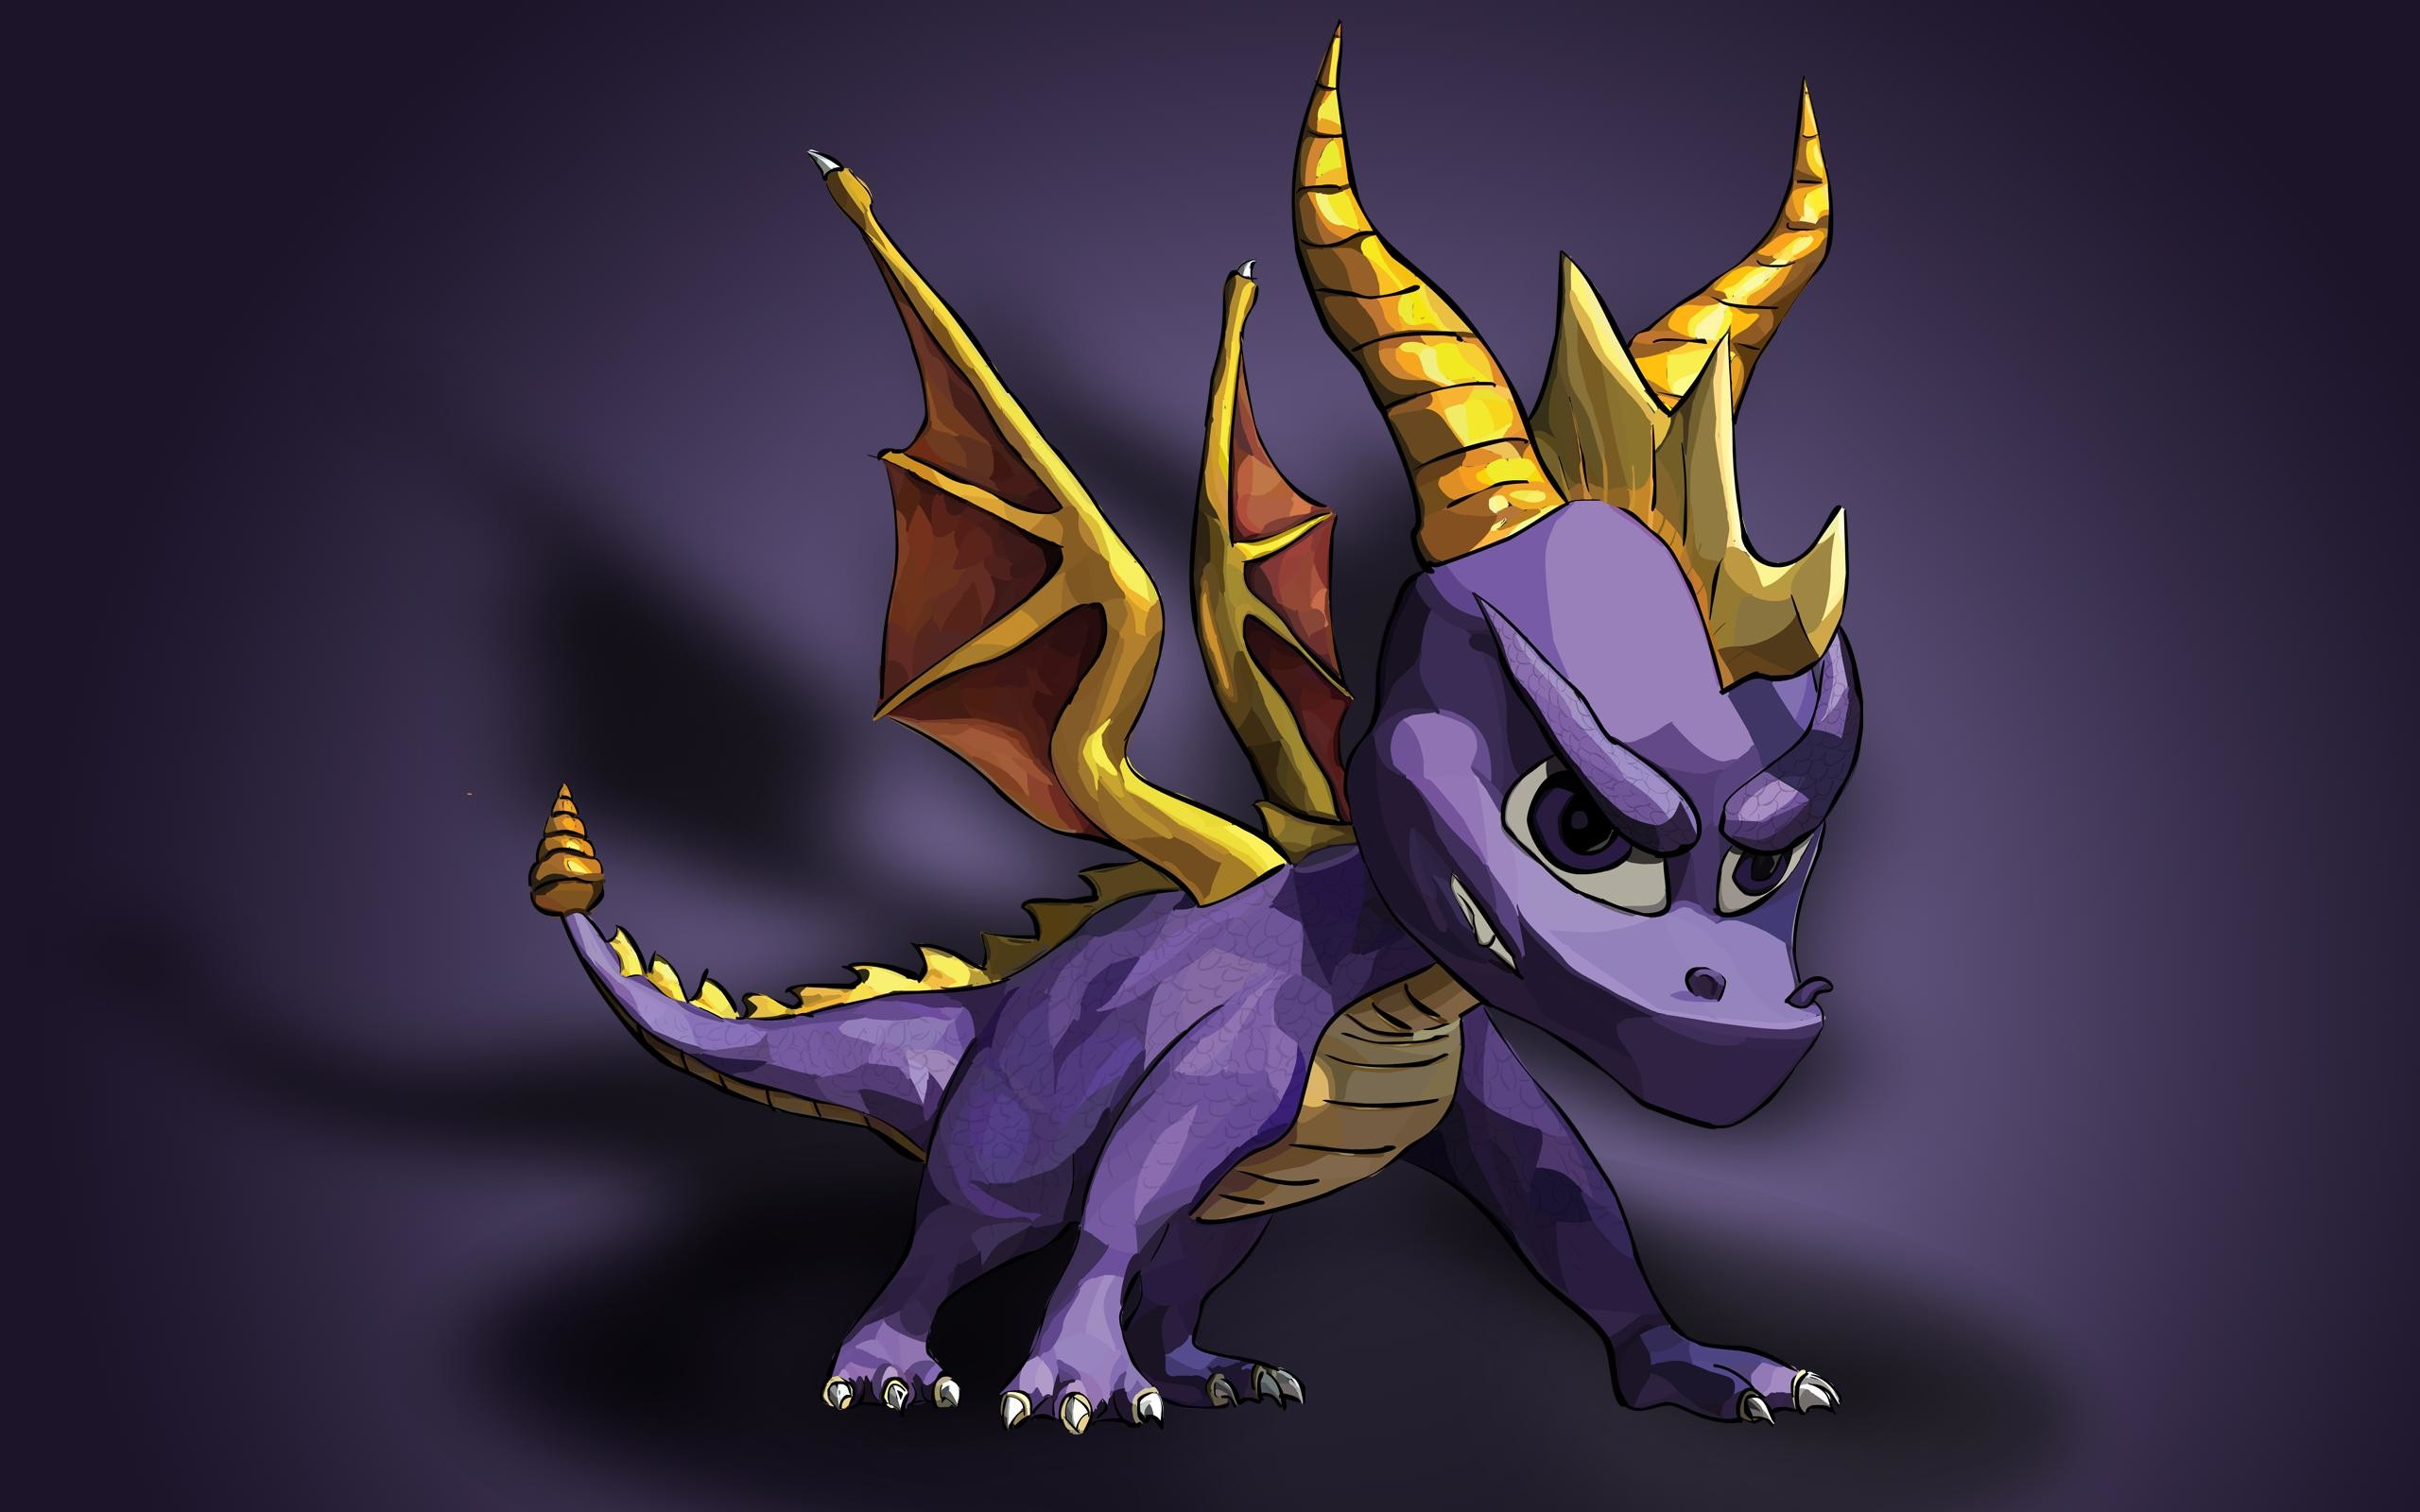 Res: 2560x1600, VFW.497 Spyro The Dragon Backgrounds - M.F. Wallpapers